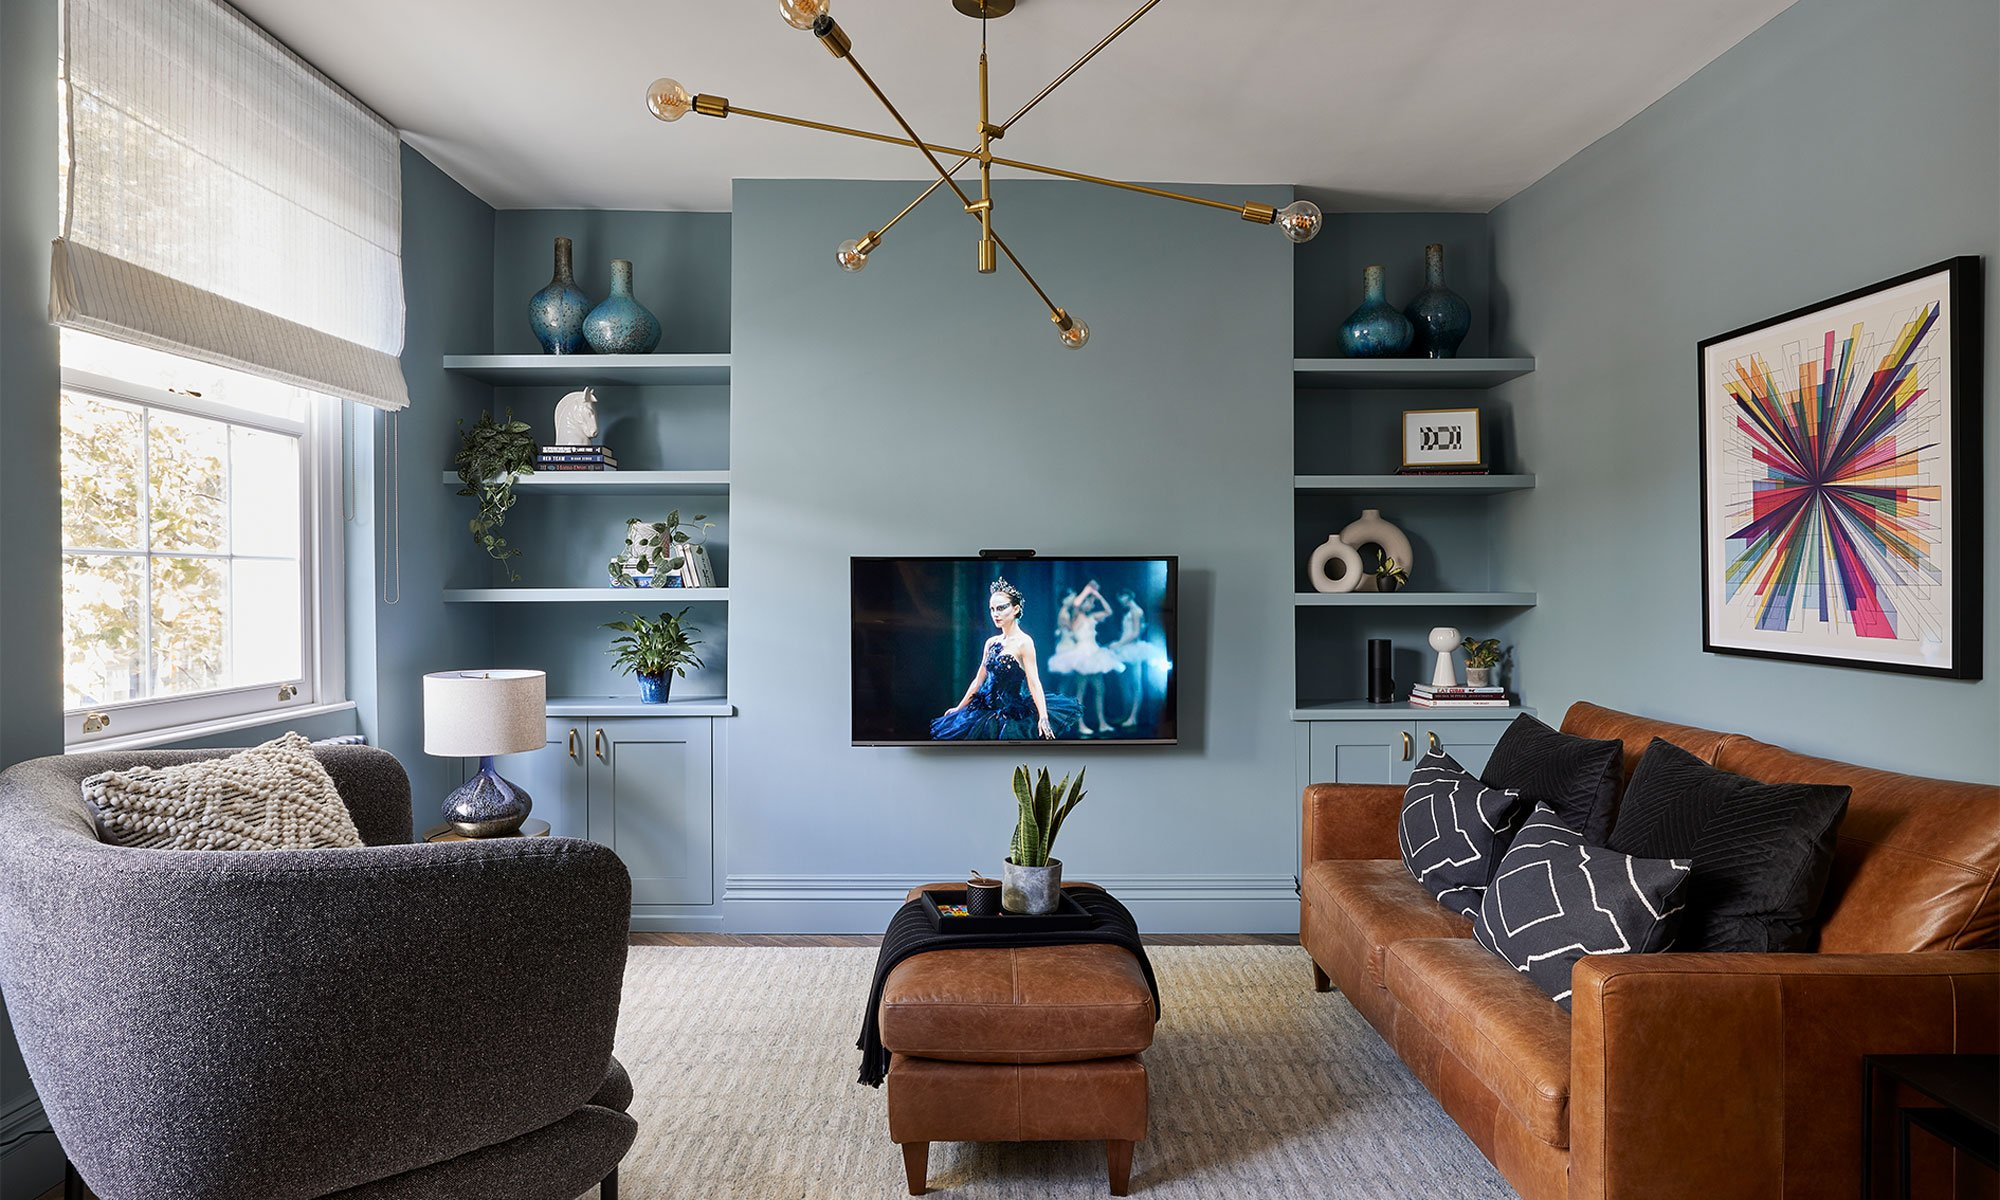 Decorating with upbeat colours has given this unloved flat a bold new identity